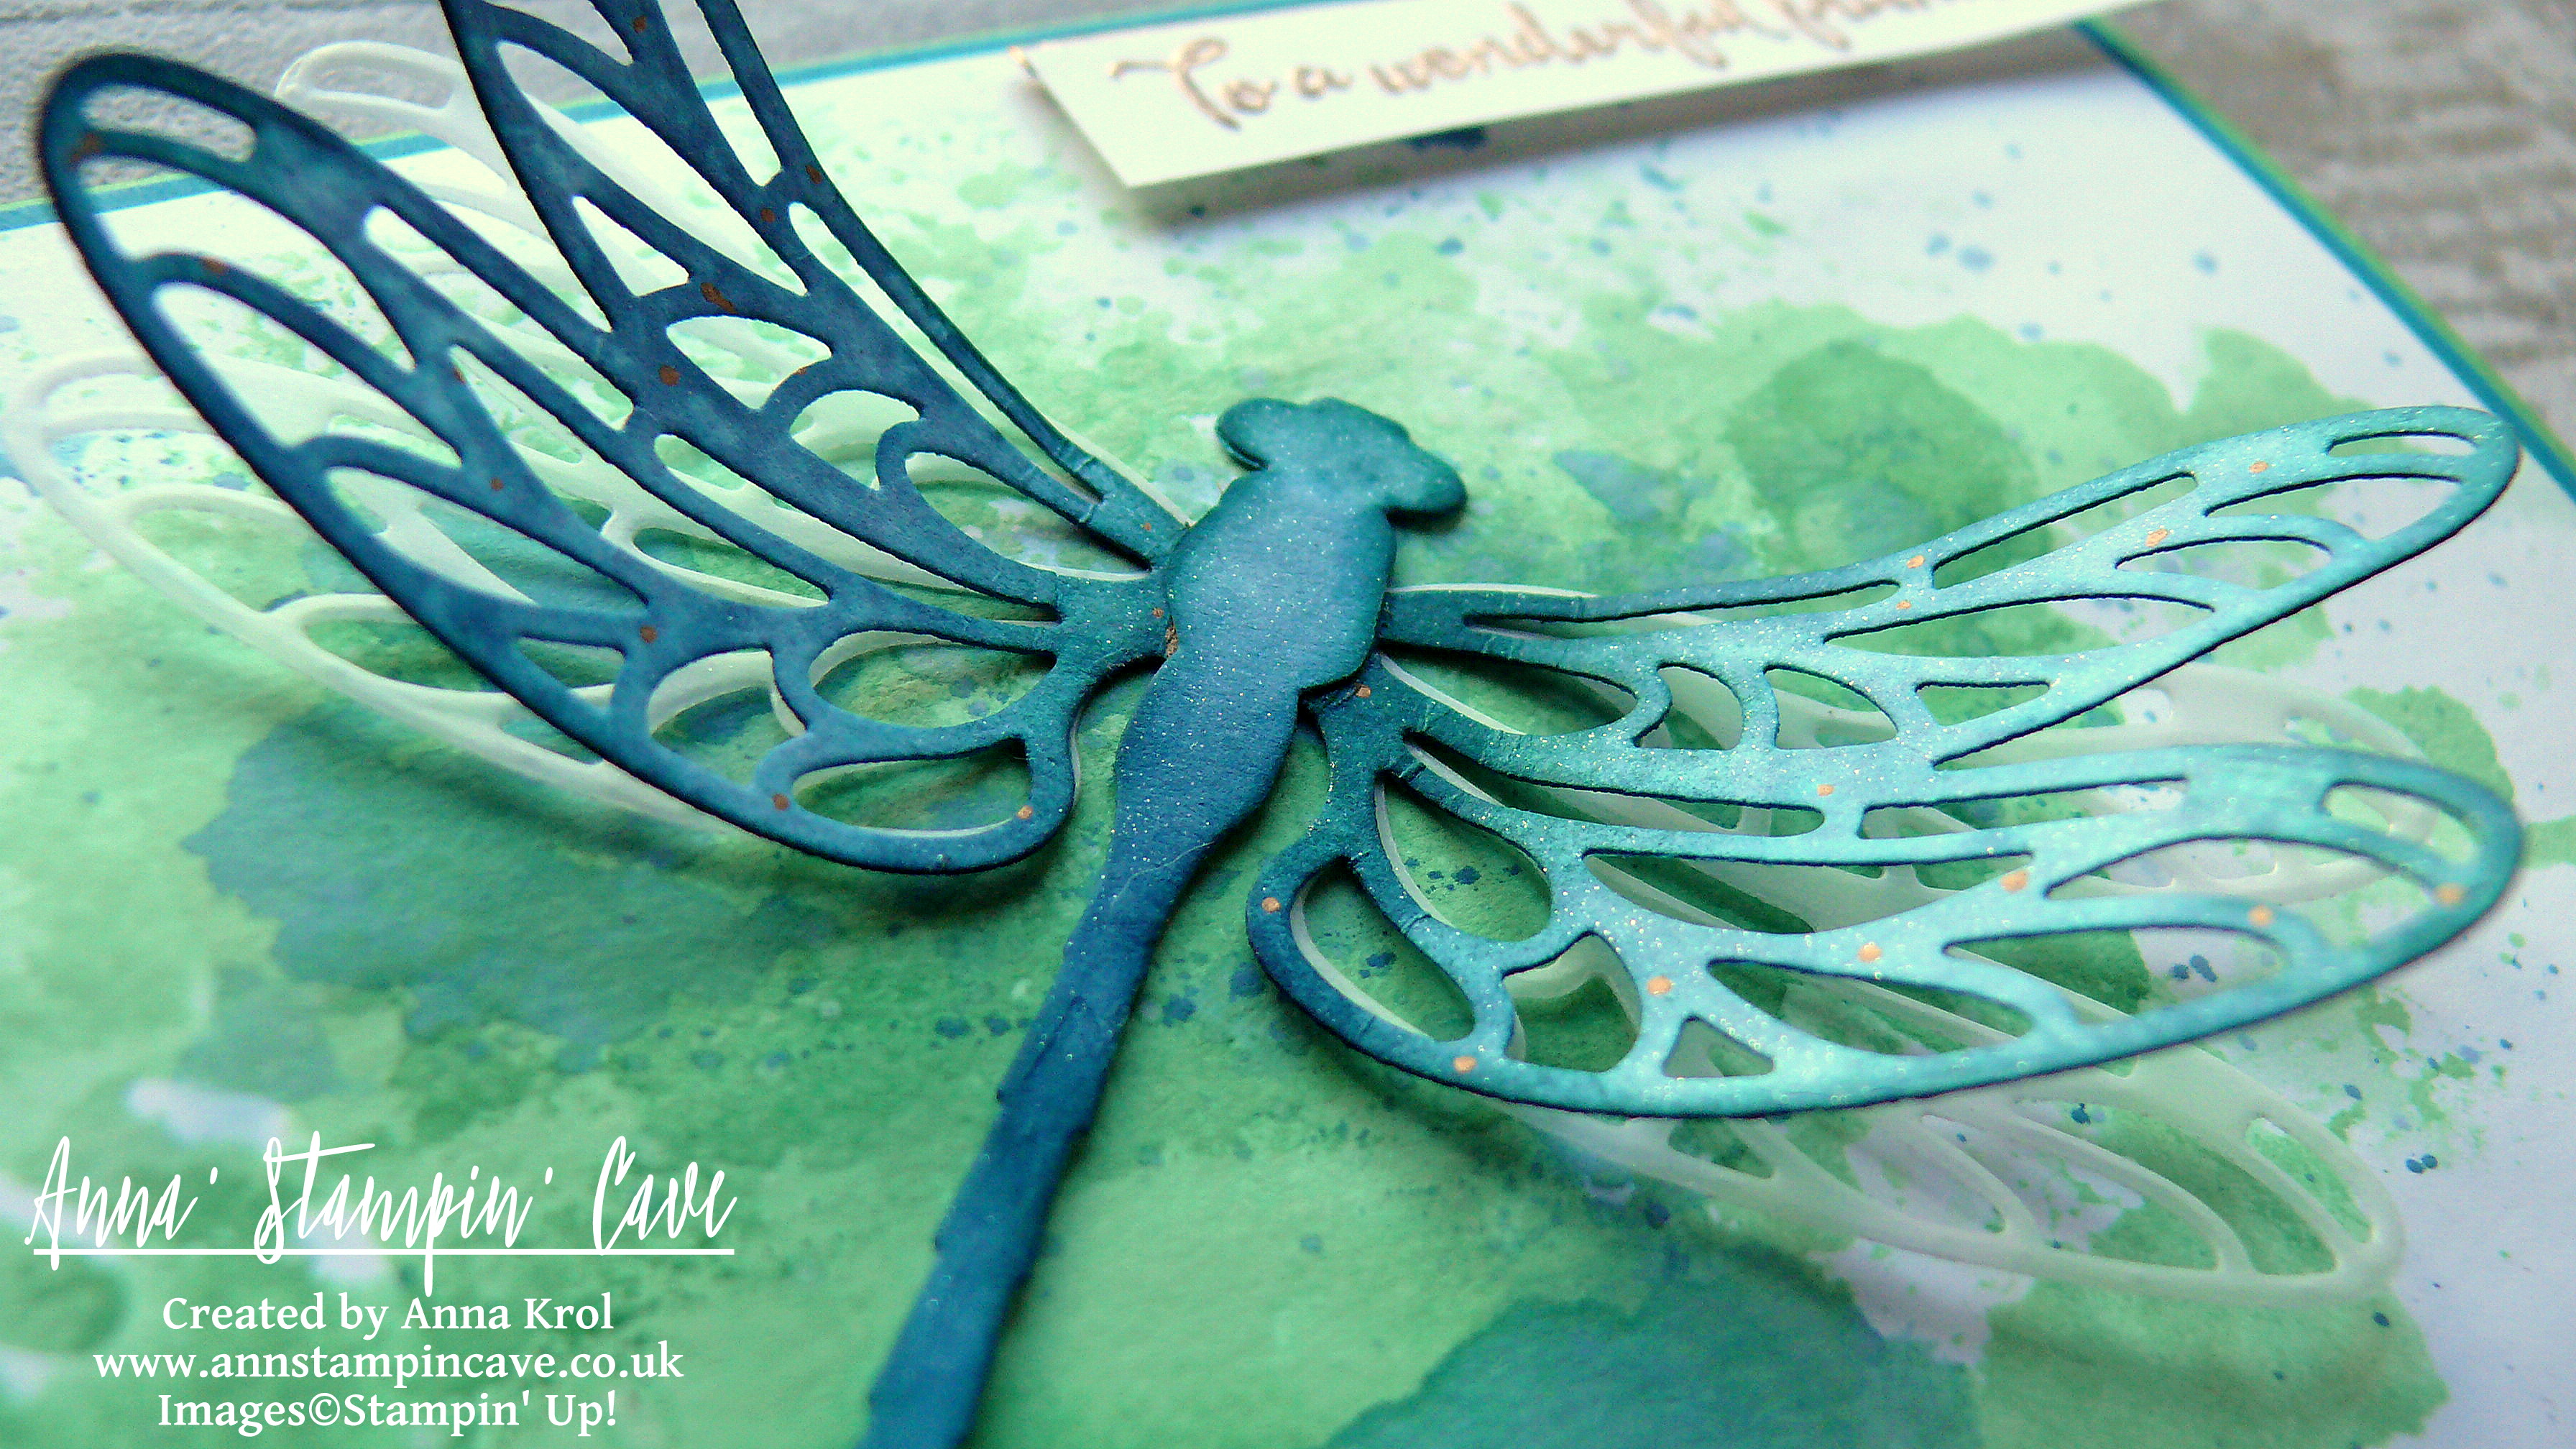 anna-stampin-cave-ink-smooshing-technique-with-dragonfly-dreams-stamp-set-coordinating-dies